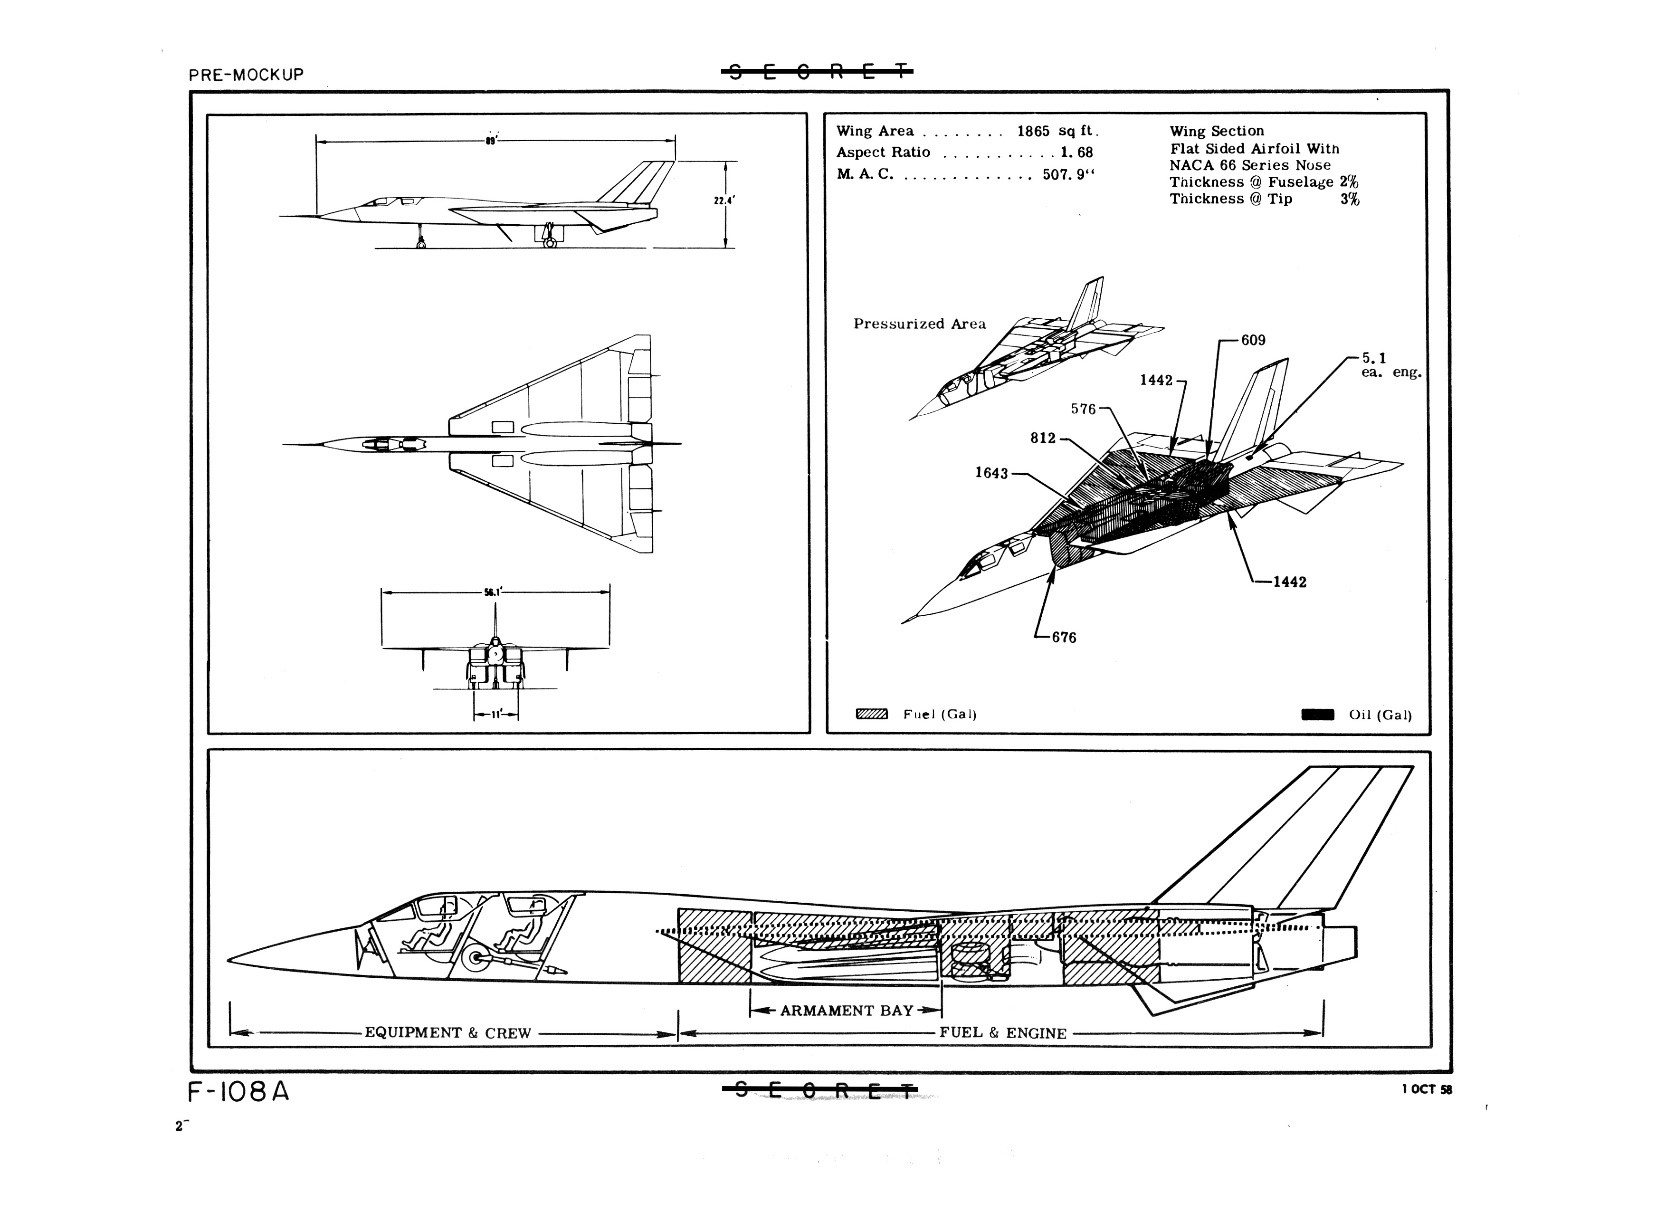 Illustration showing the F-108 layout